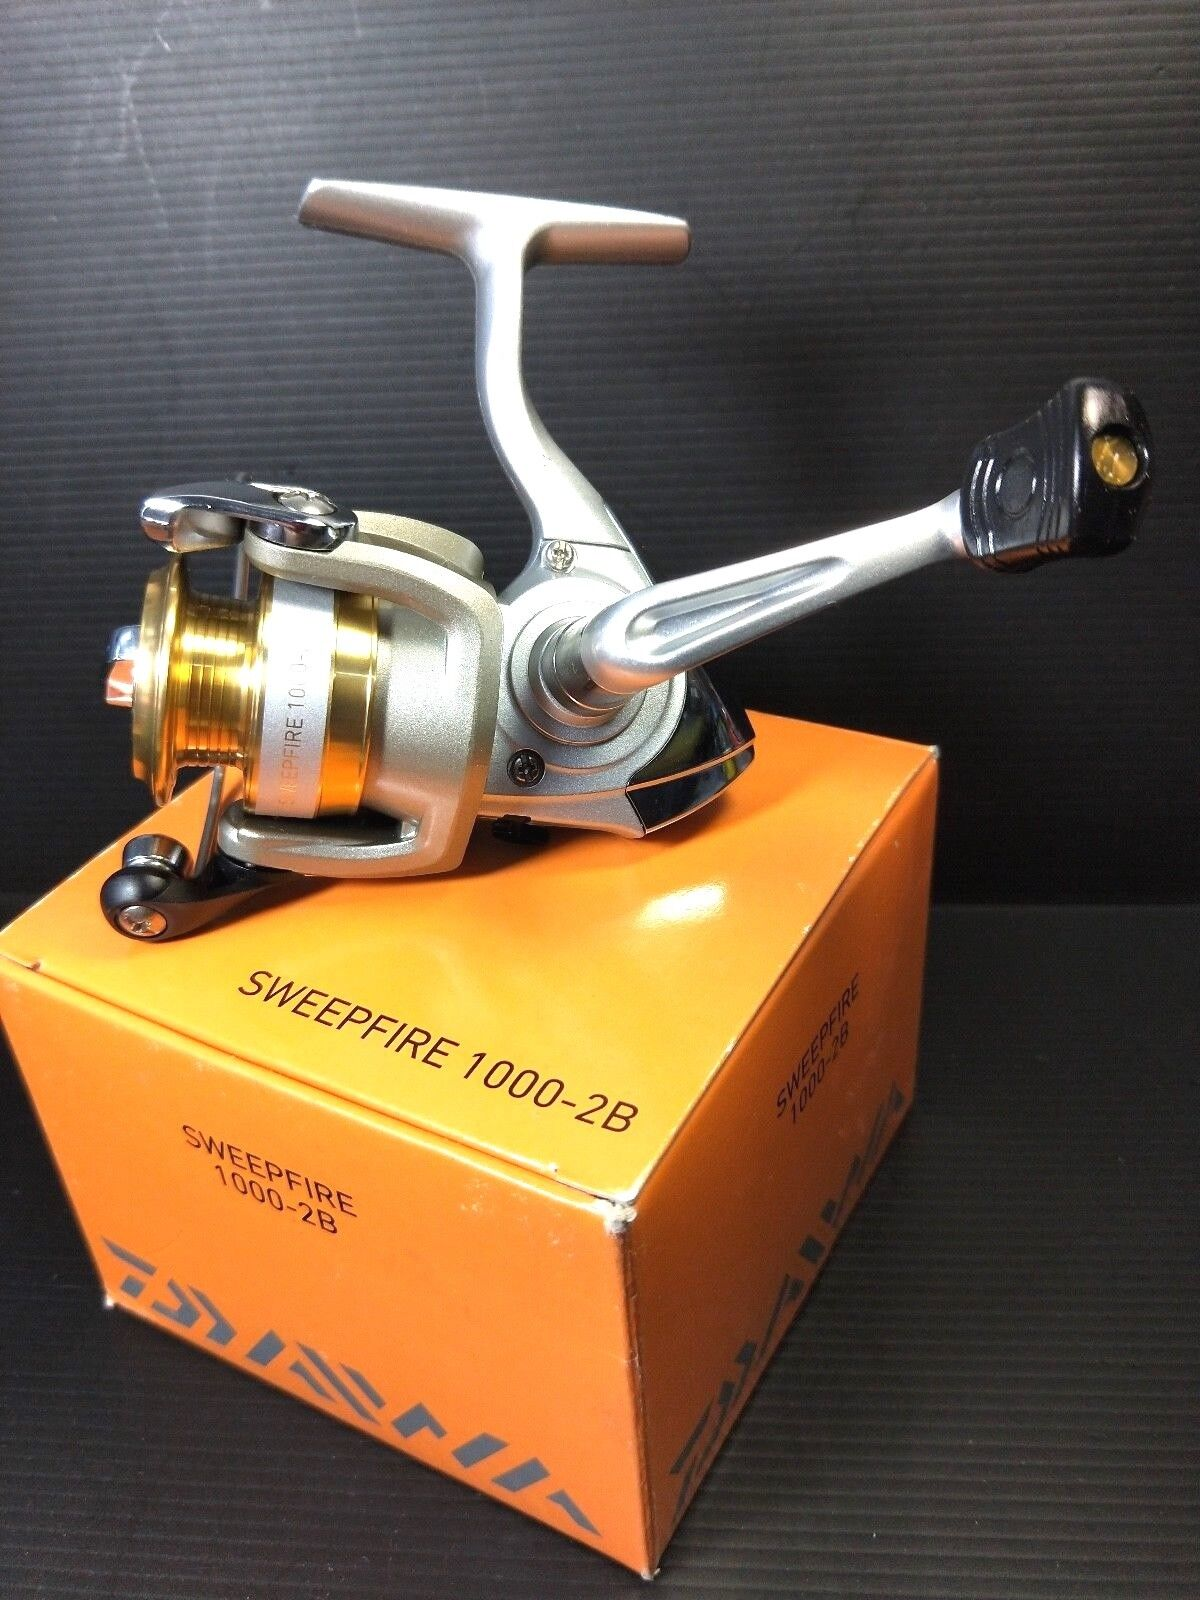 1 pc Daiwa SweepFire 1000-2B Spinning Fishing reel 2BB, ABS, Digigear, NIB